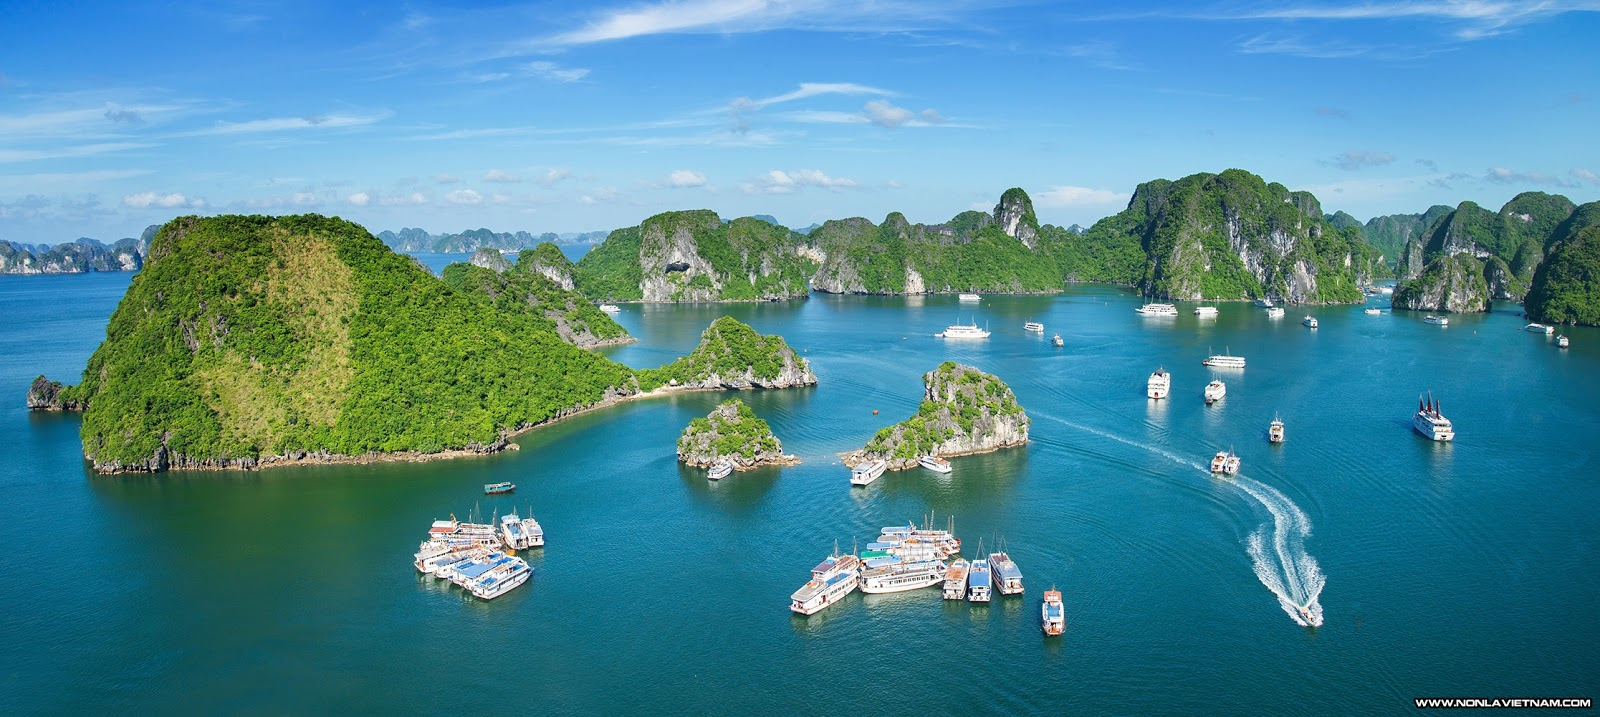 HA LONG BAY 1 DAY TOUR